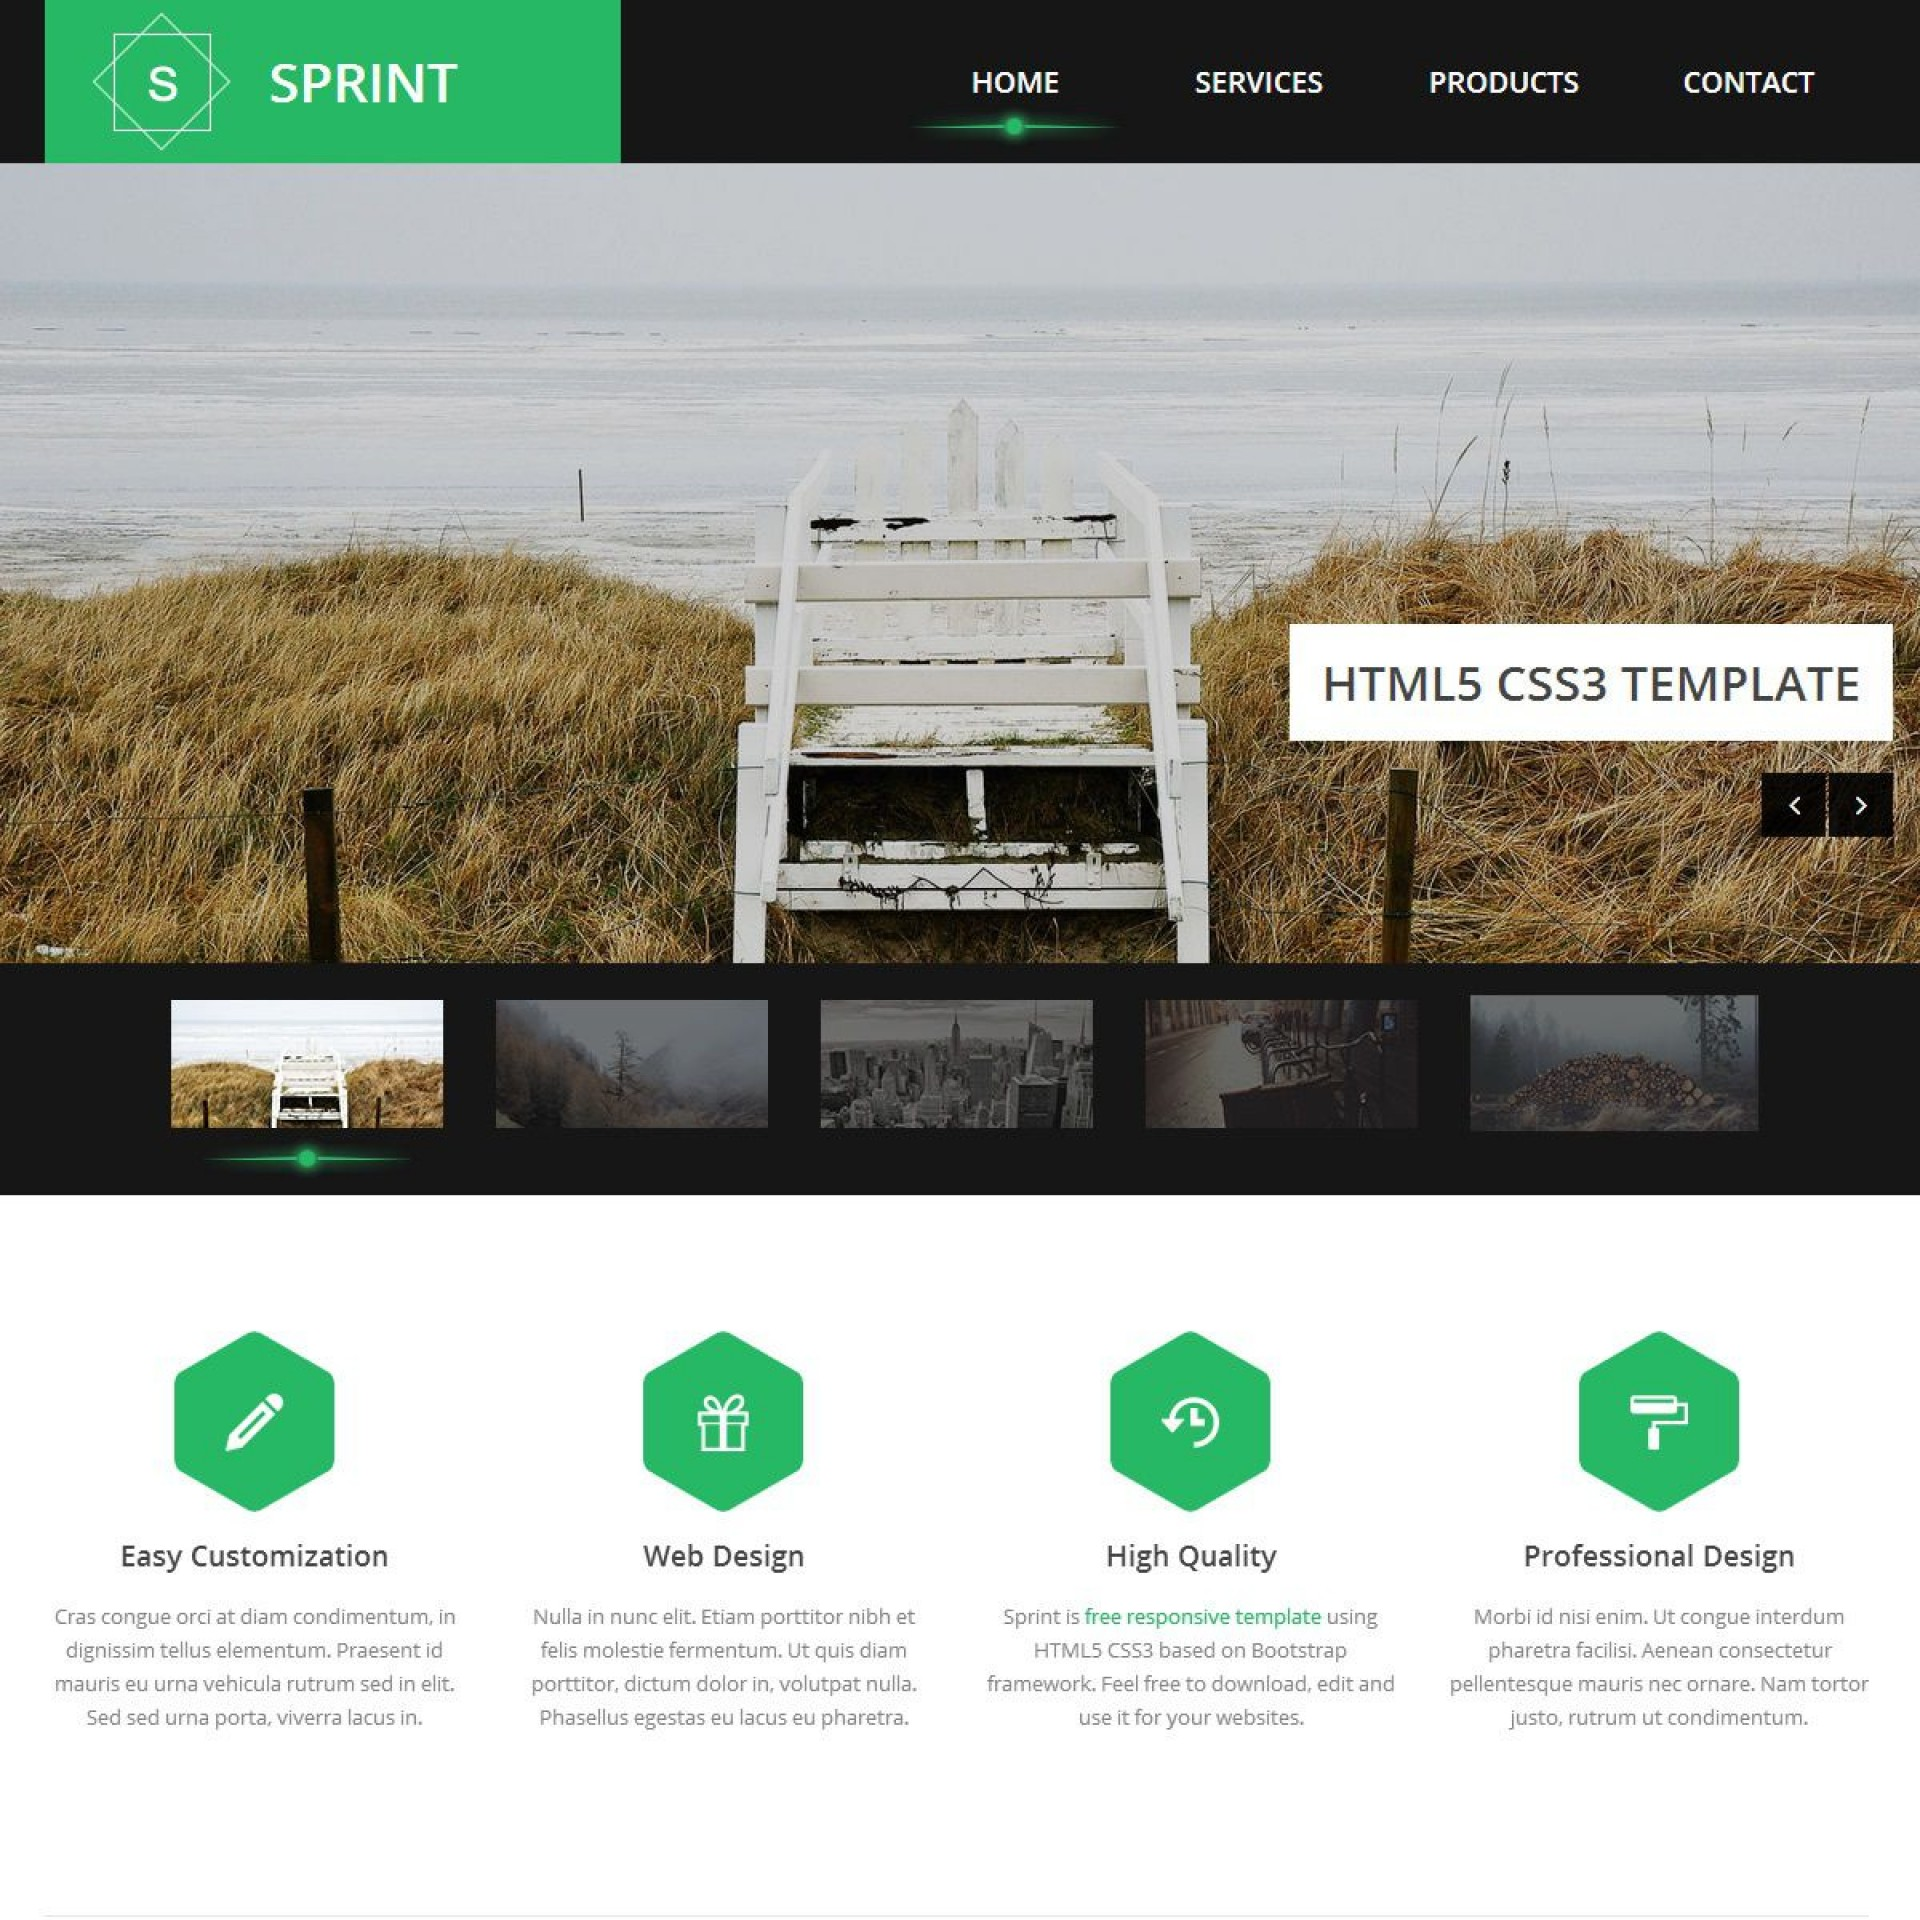 007 Breathtaking Free Responsive Website Template Download Html And Cs Jquery Image  For It Company1920